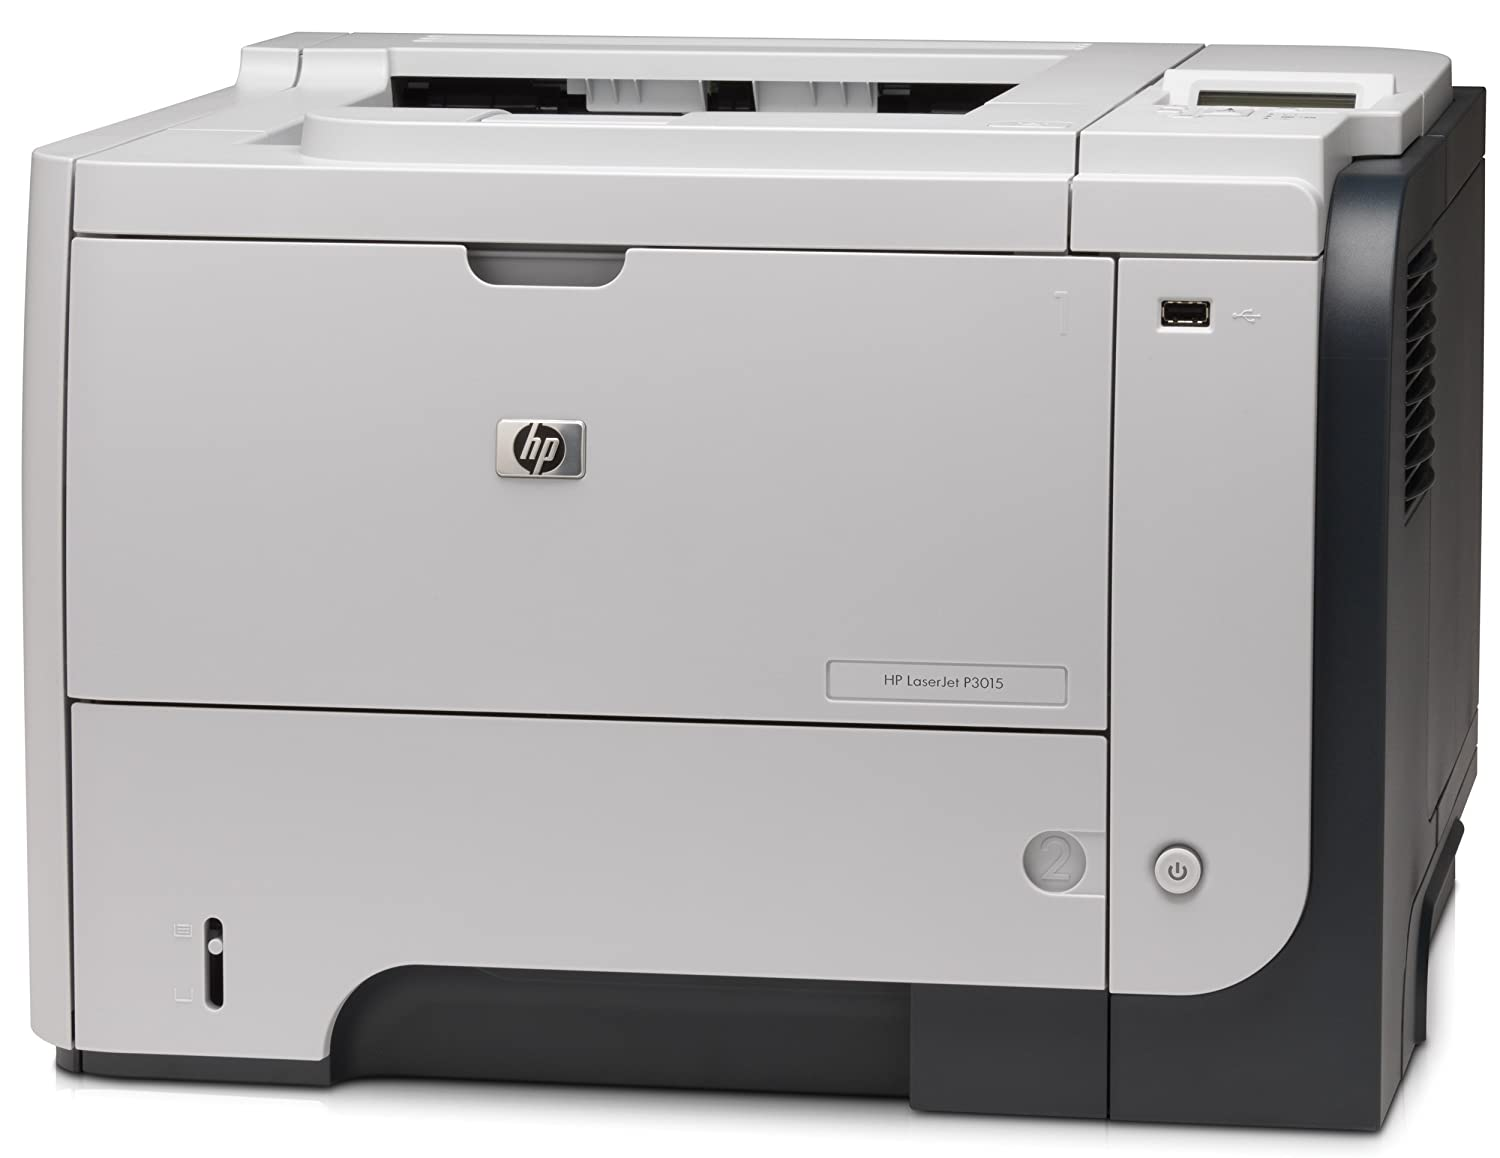 HP LASER PRINTER P3015 DRIVER FOR WINDOWS 8